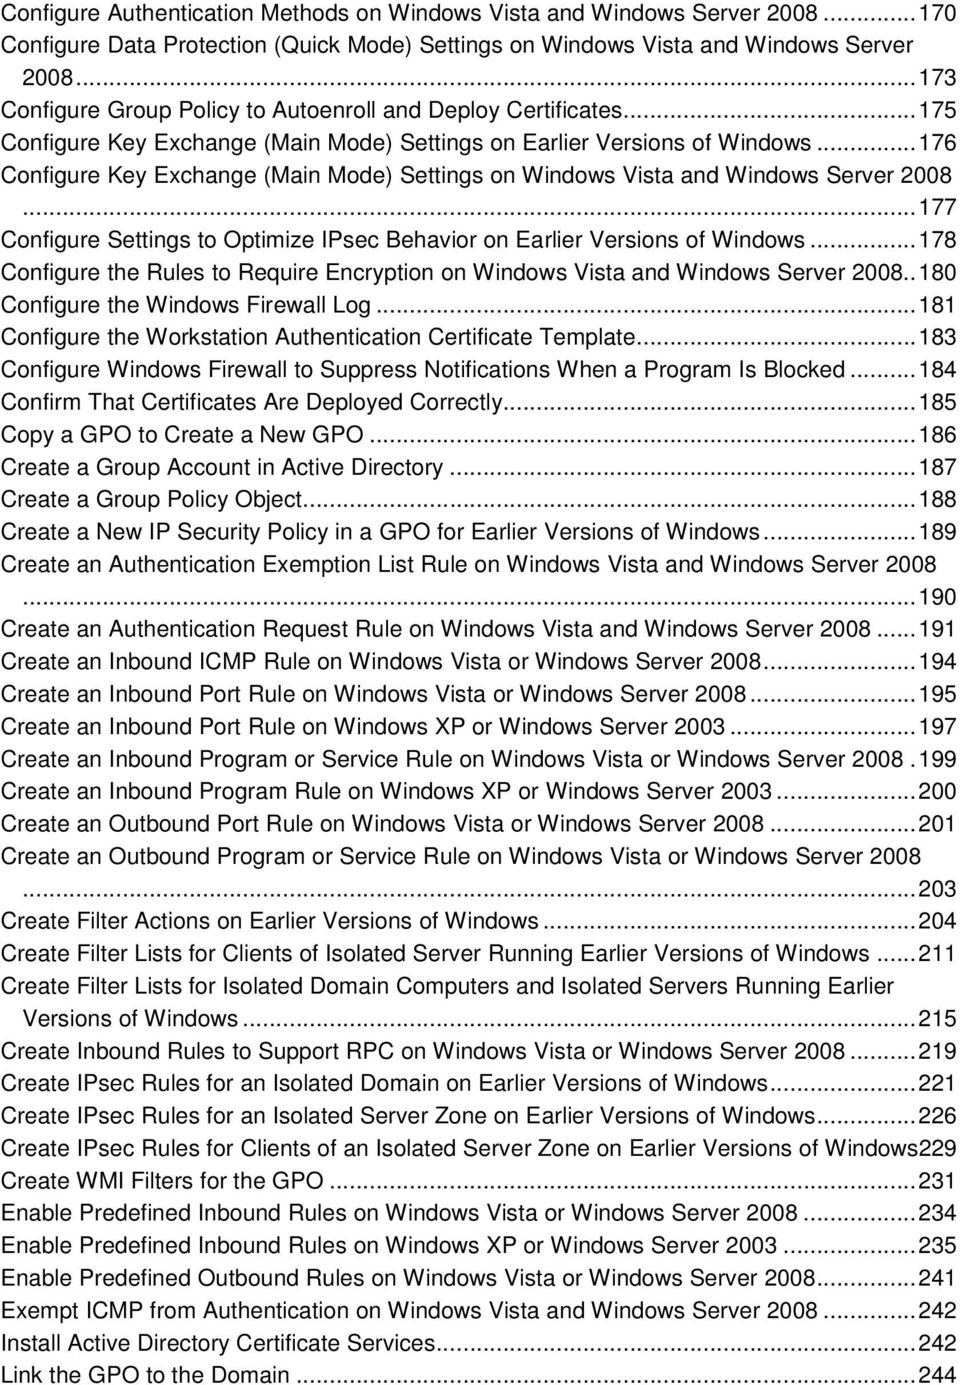 .. 176 Configure Key Exchange (Main Mode) Settings on Windows Vista and Windows Server 2008... 177 Configure Settings to Optimize IPsec Behavior on Earlier Versions of Windows.